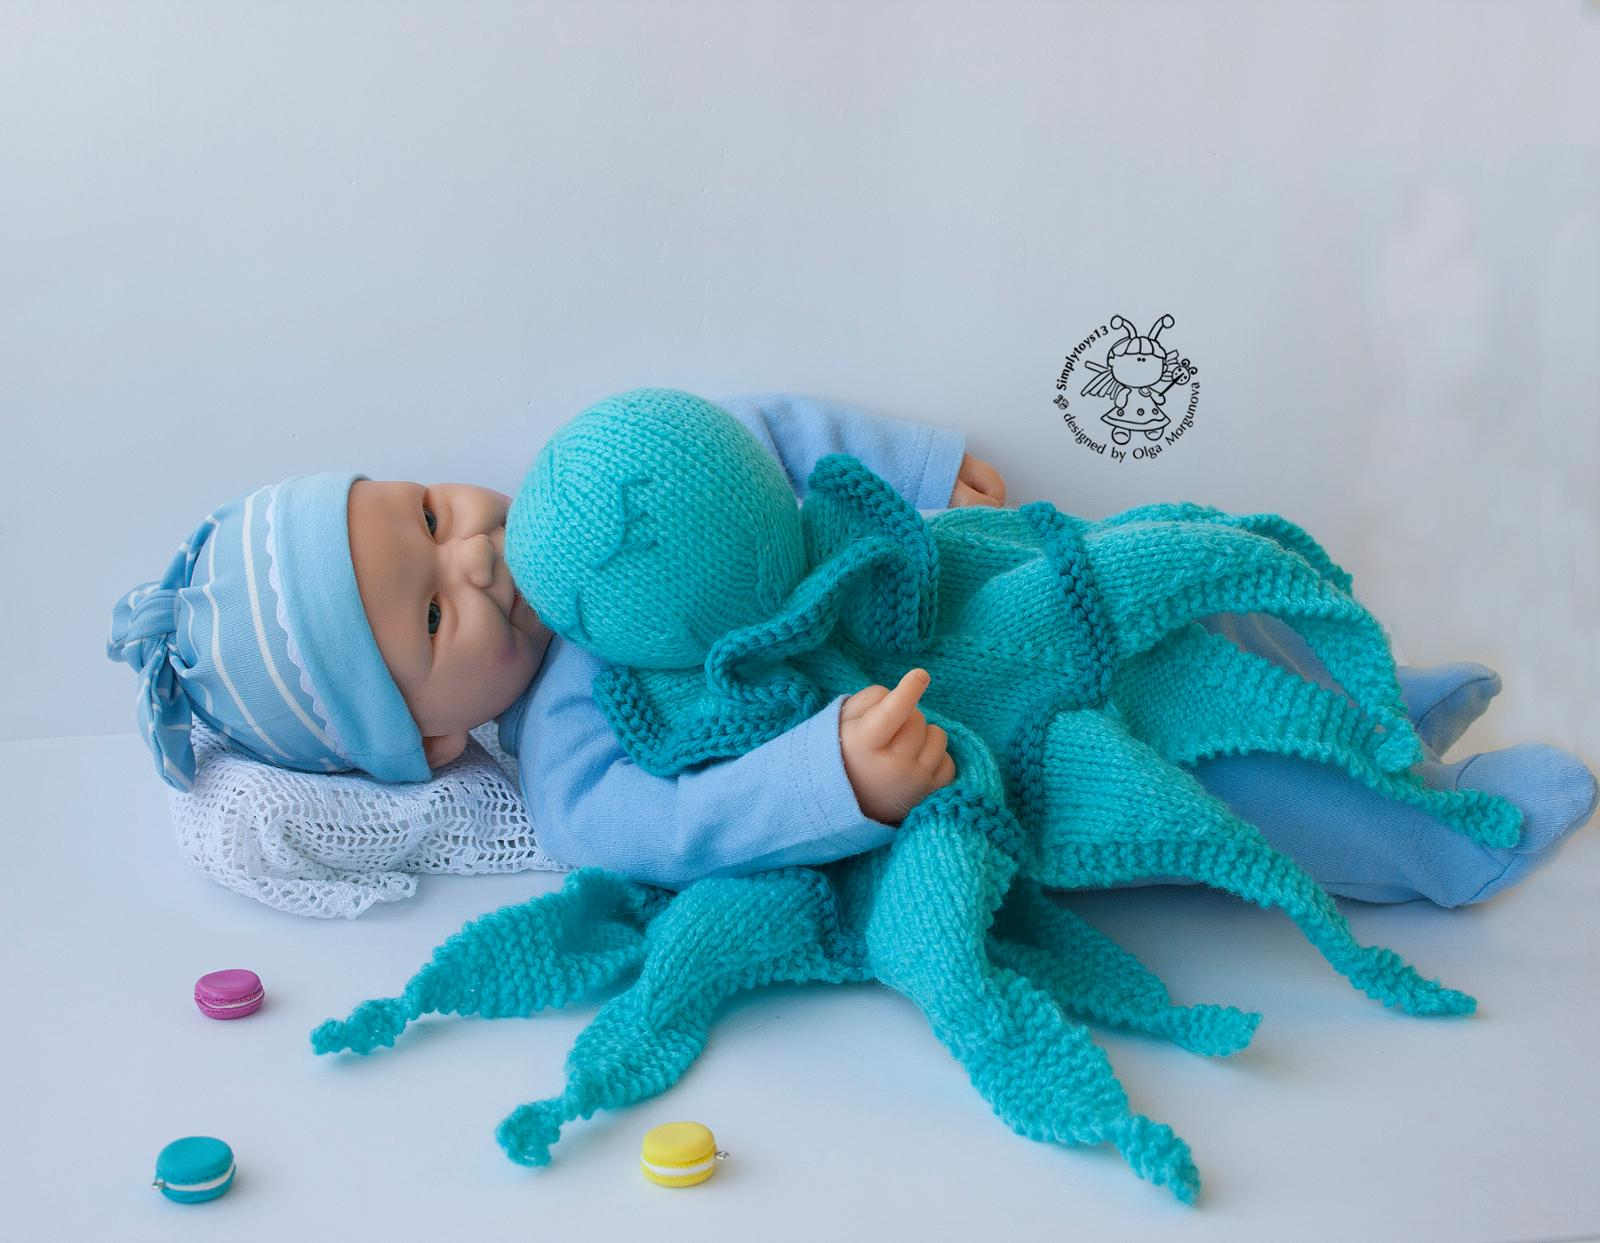 Octopus Toy Lace Baby Blanket Knitting Pattern